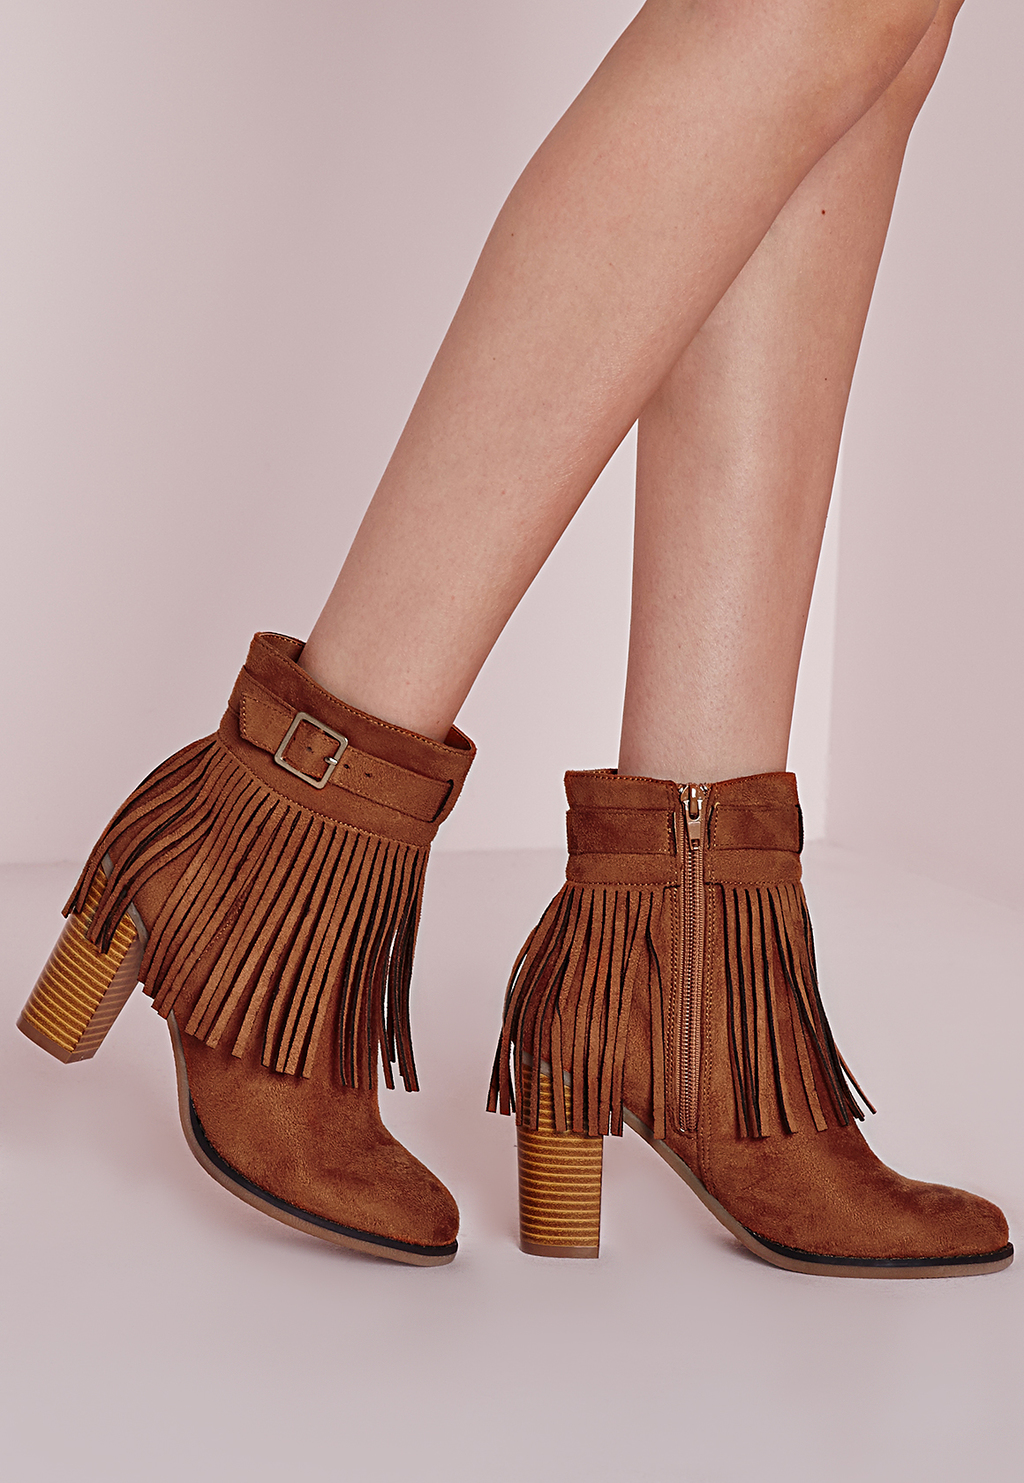 Fringed Trim Heeled Ankle Boots Tan, Brown - predominant colour: tan; occasions: casual; heel height: high; heel: block; toe: round toe; boot length: ankle boot; style: standard; finish: plain; pattern: plain; embellishment: fringing; material: faux suede; season: s/s 2016